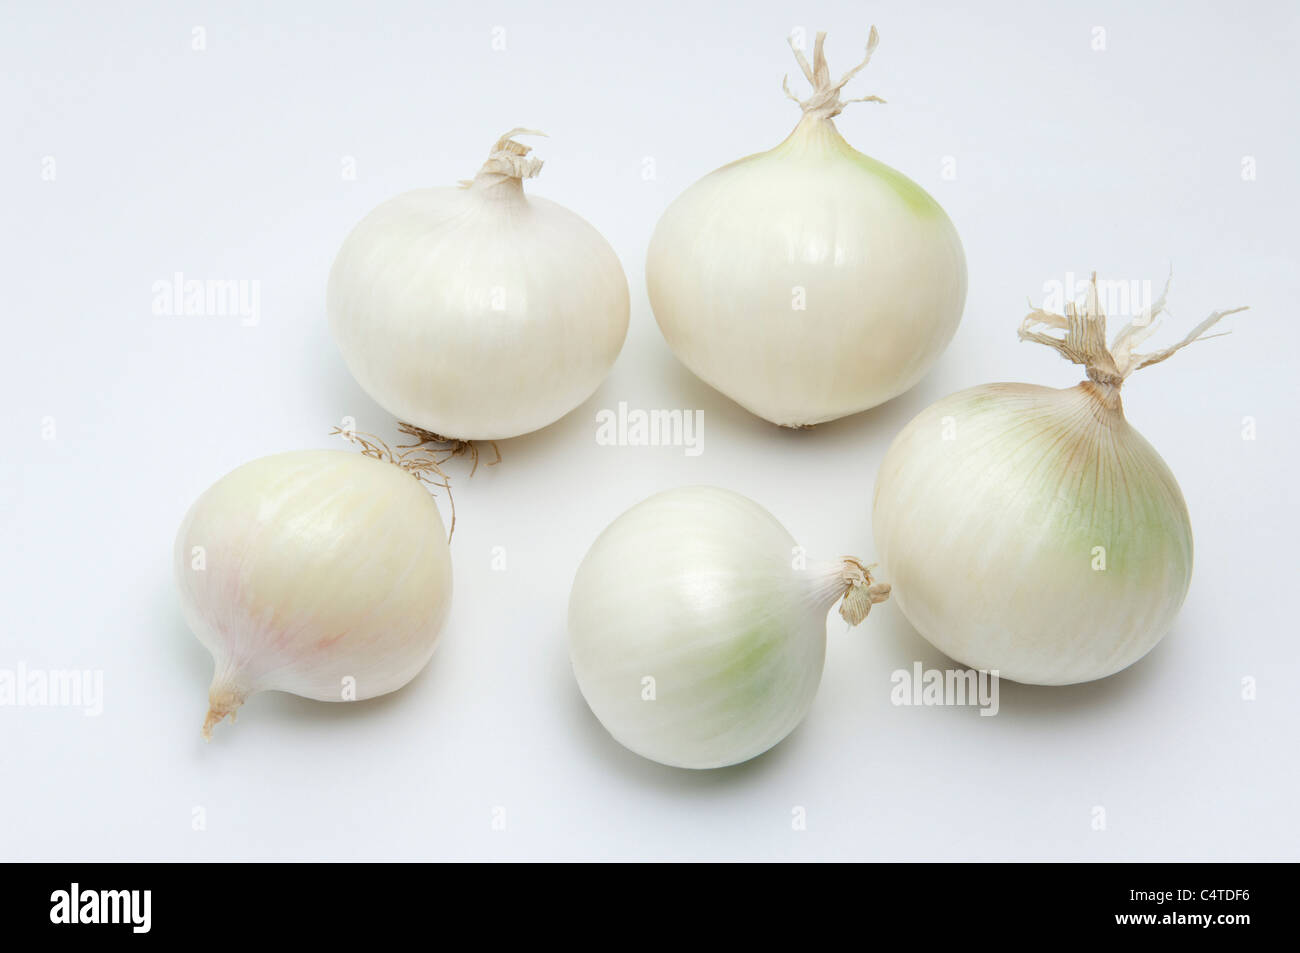 Garden Onion (Allium cepa). Five white onions. Studio picture against a white background. - Stock Image